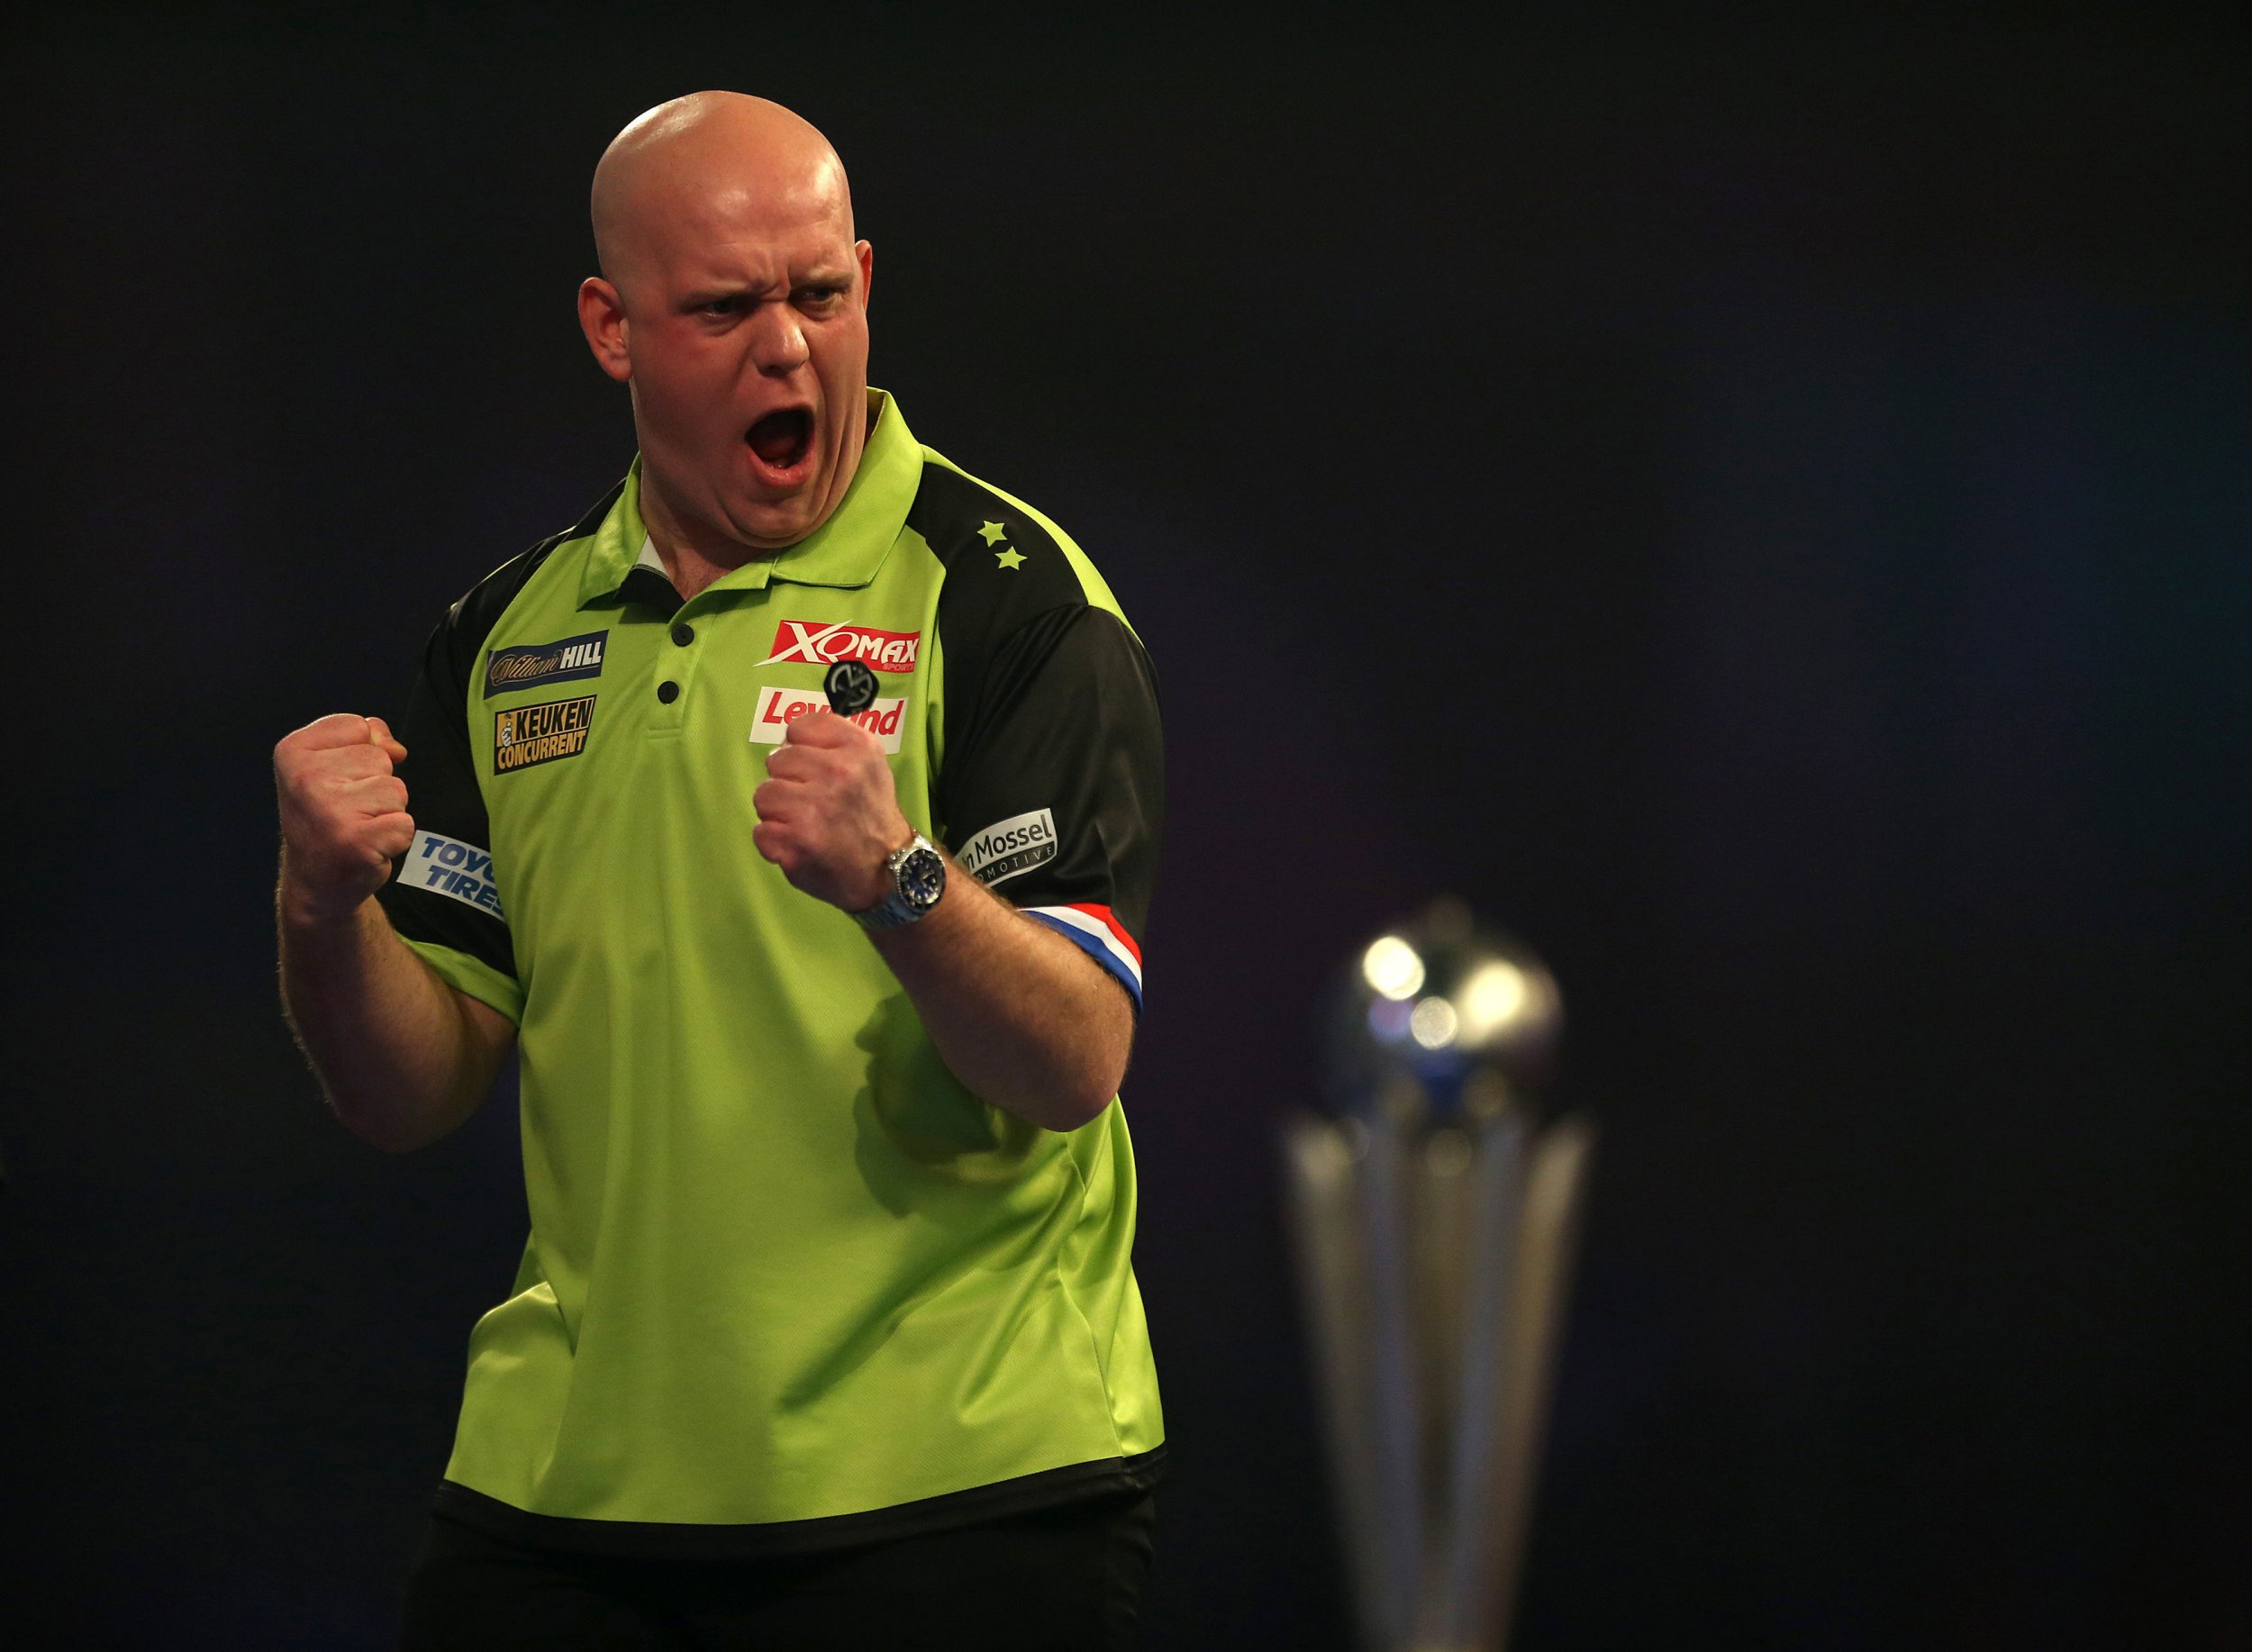 Michael Van Gerwen reacting during day sixteen of the William Hill World Darts Championships at Alexandra Palace, London. PRESS ASSOCIATION Photo. Picture date: Tuesday January 1, 2019. Photo credit should read: Steven Paston/PA Wire